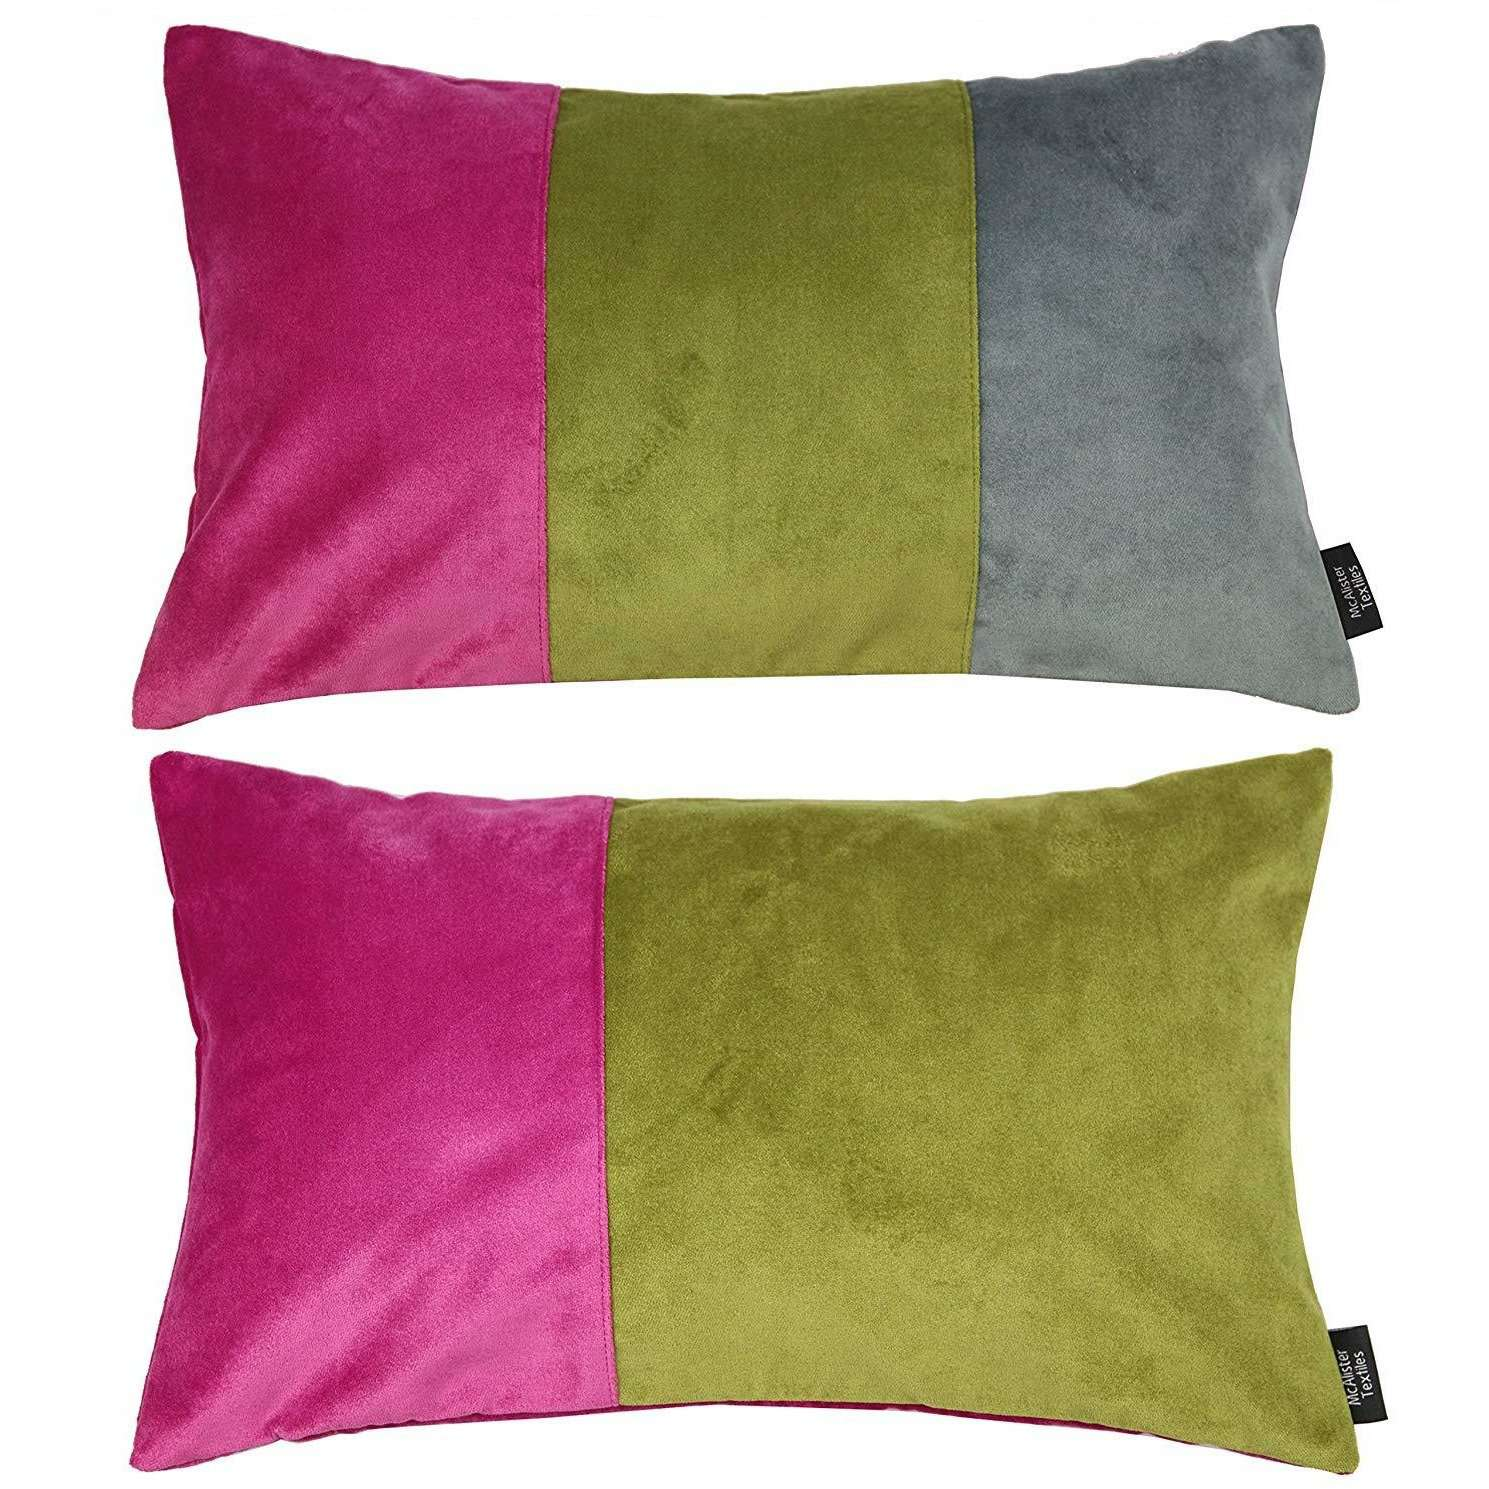 McAlister Textiles Patchwork Velvet Pink, Green + Grey 50cm x 30cm Pillow Sets Pillow Set of 2 Cushion Covers